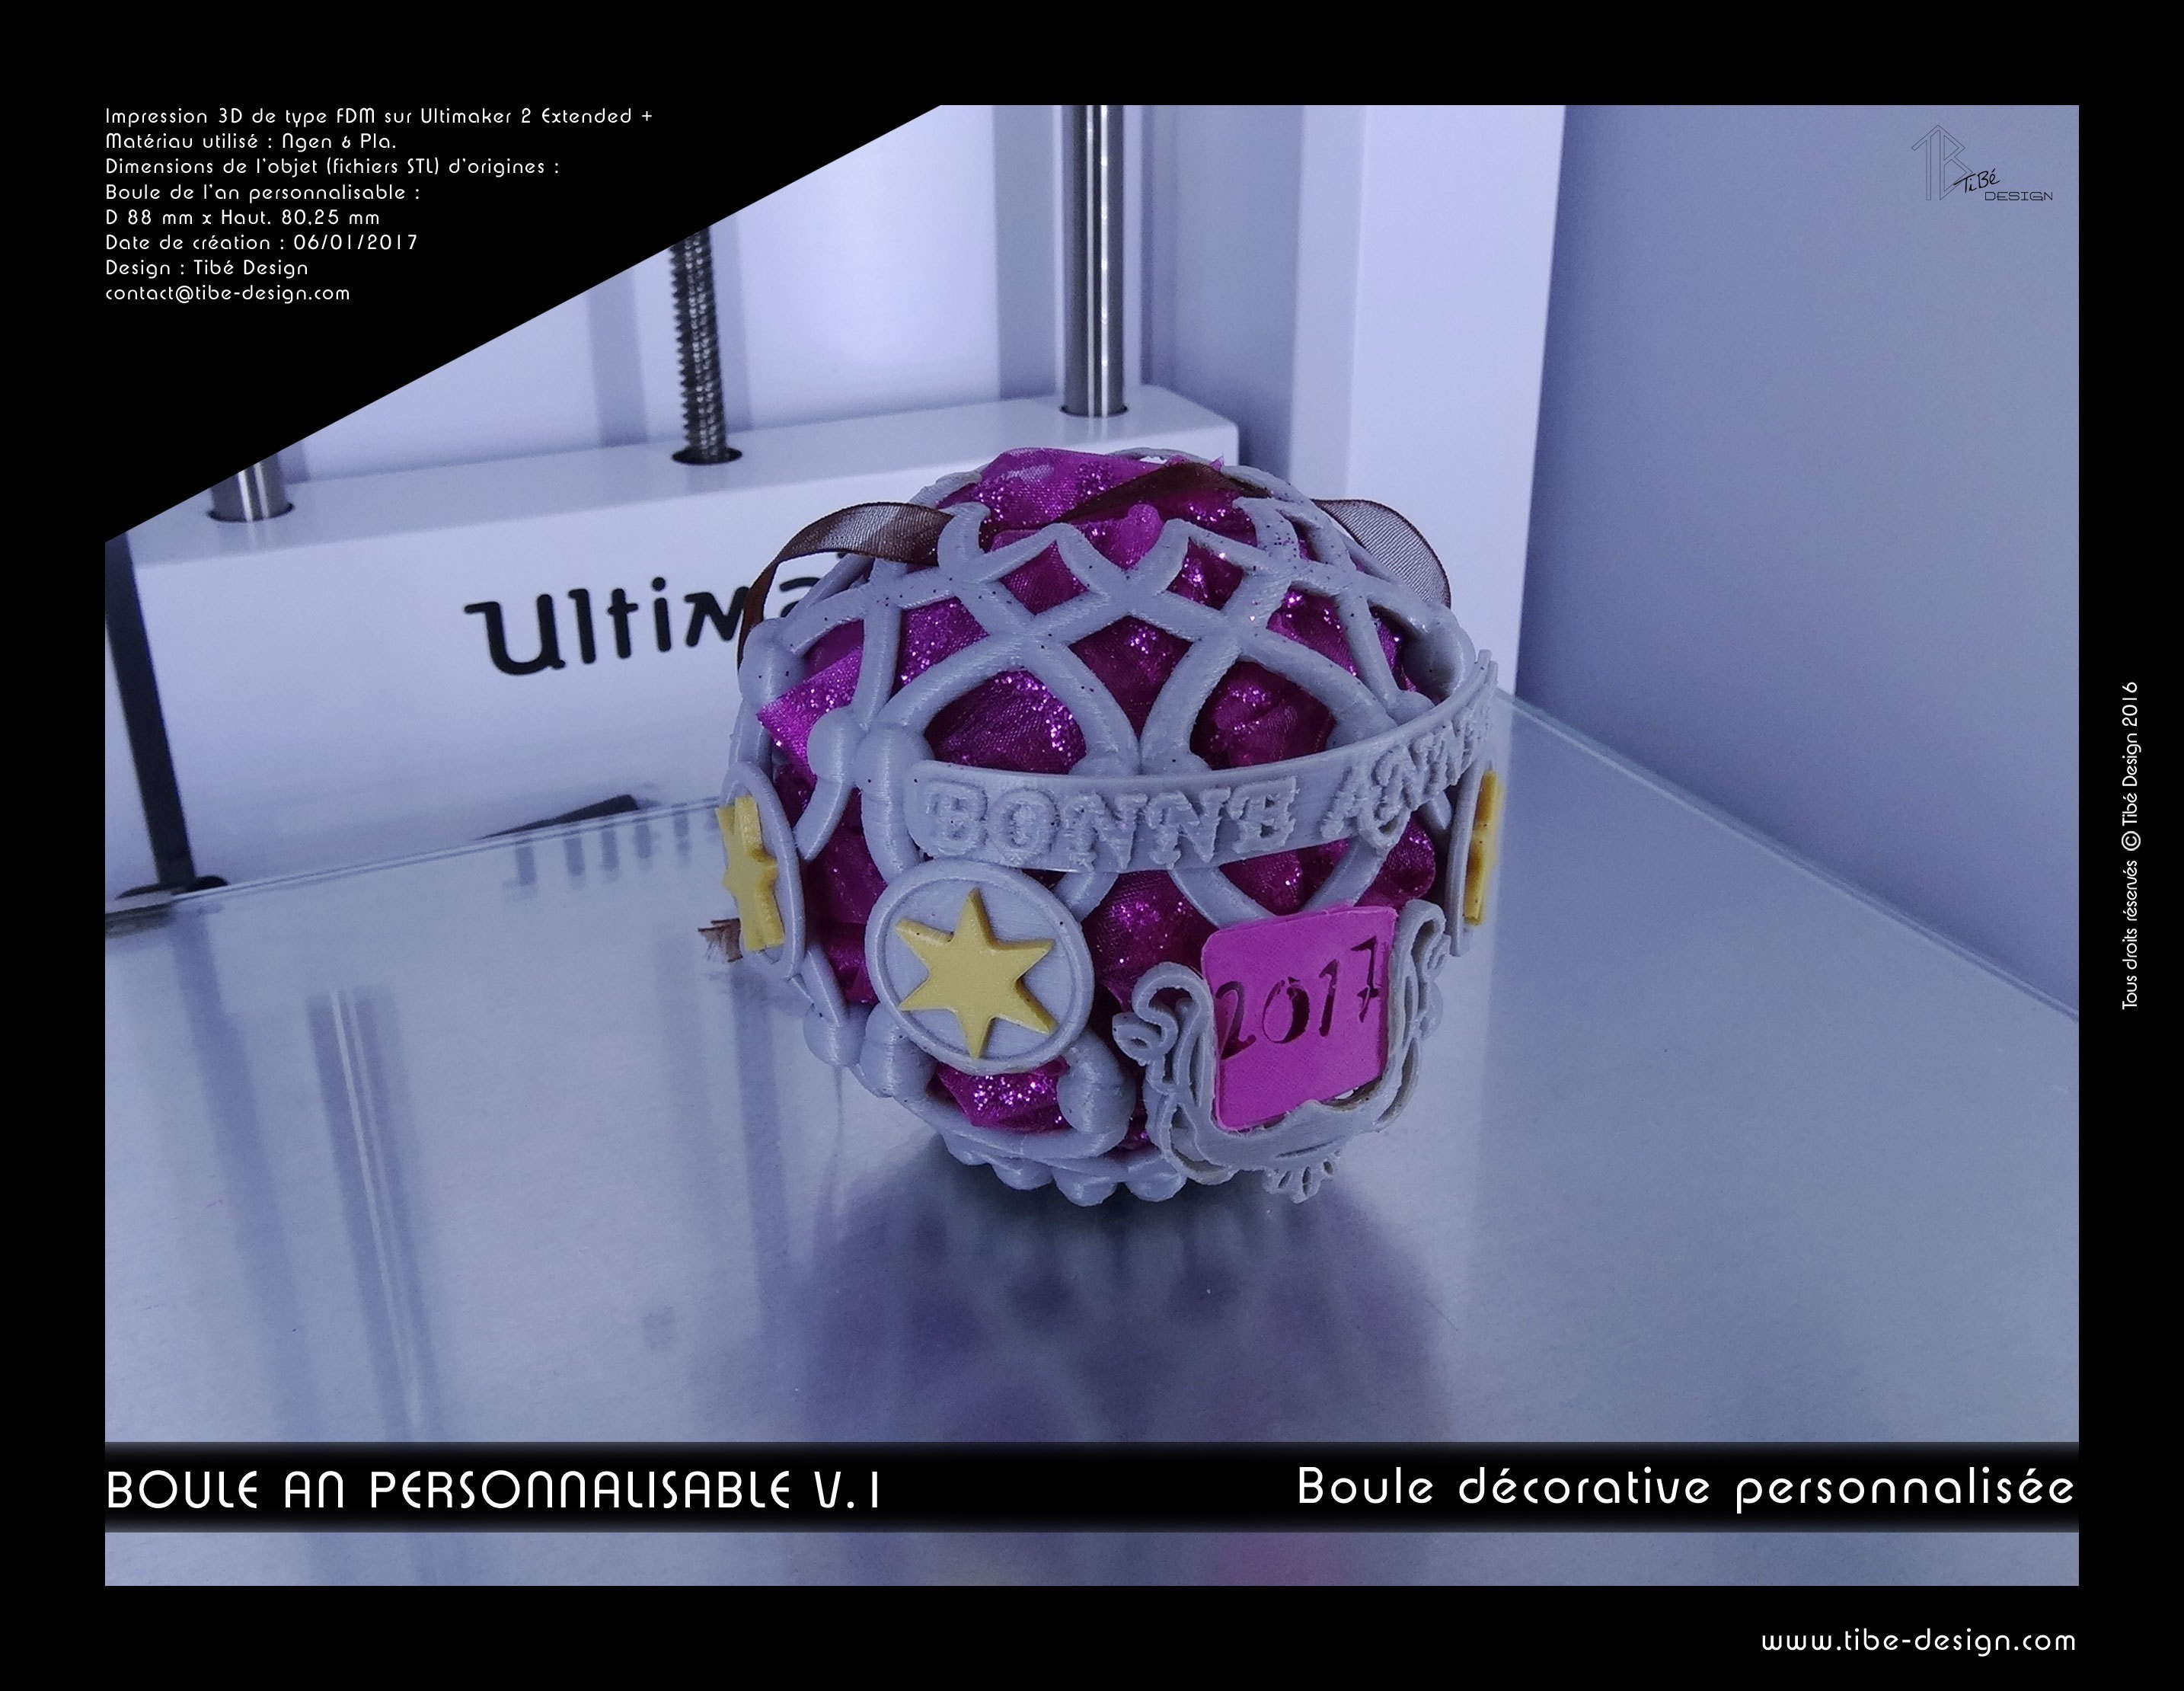 boule_an_perso2017-01.jpg Download free STL file Decorative ball of the new year V.1 • 3D printer template, Tibe-Design